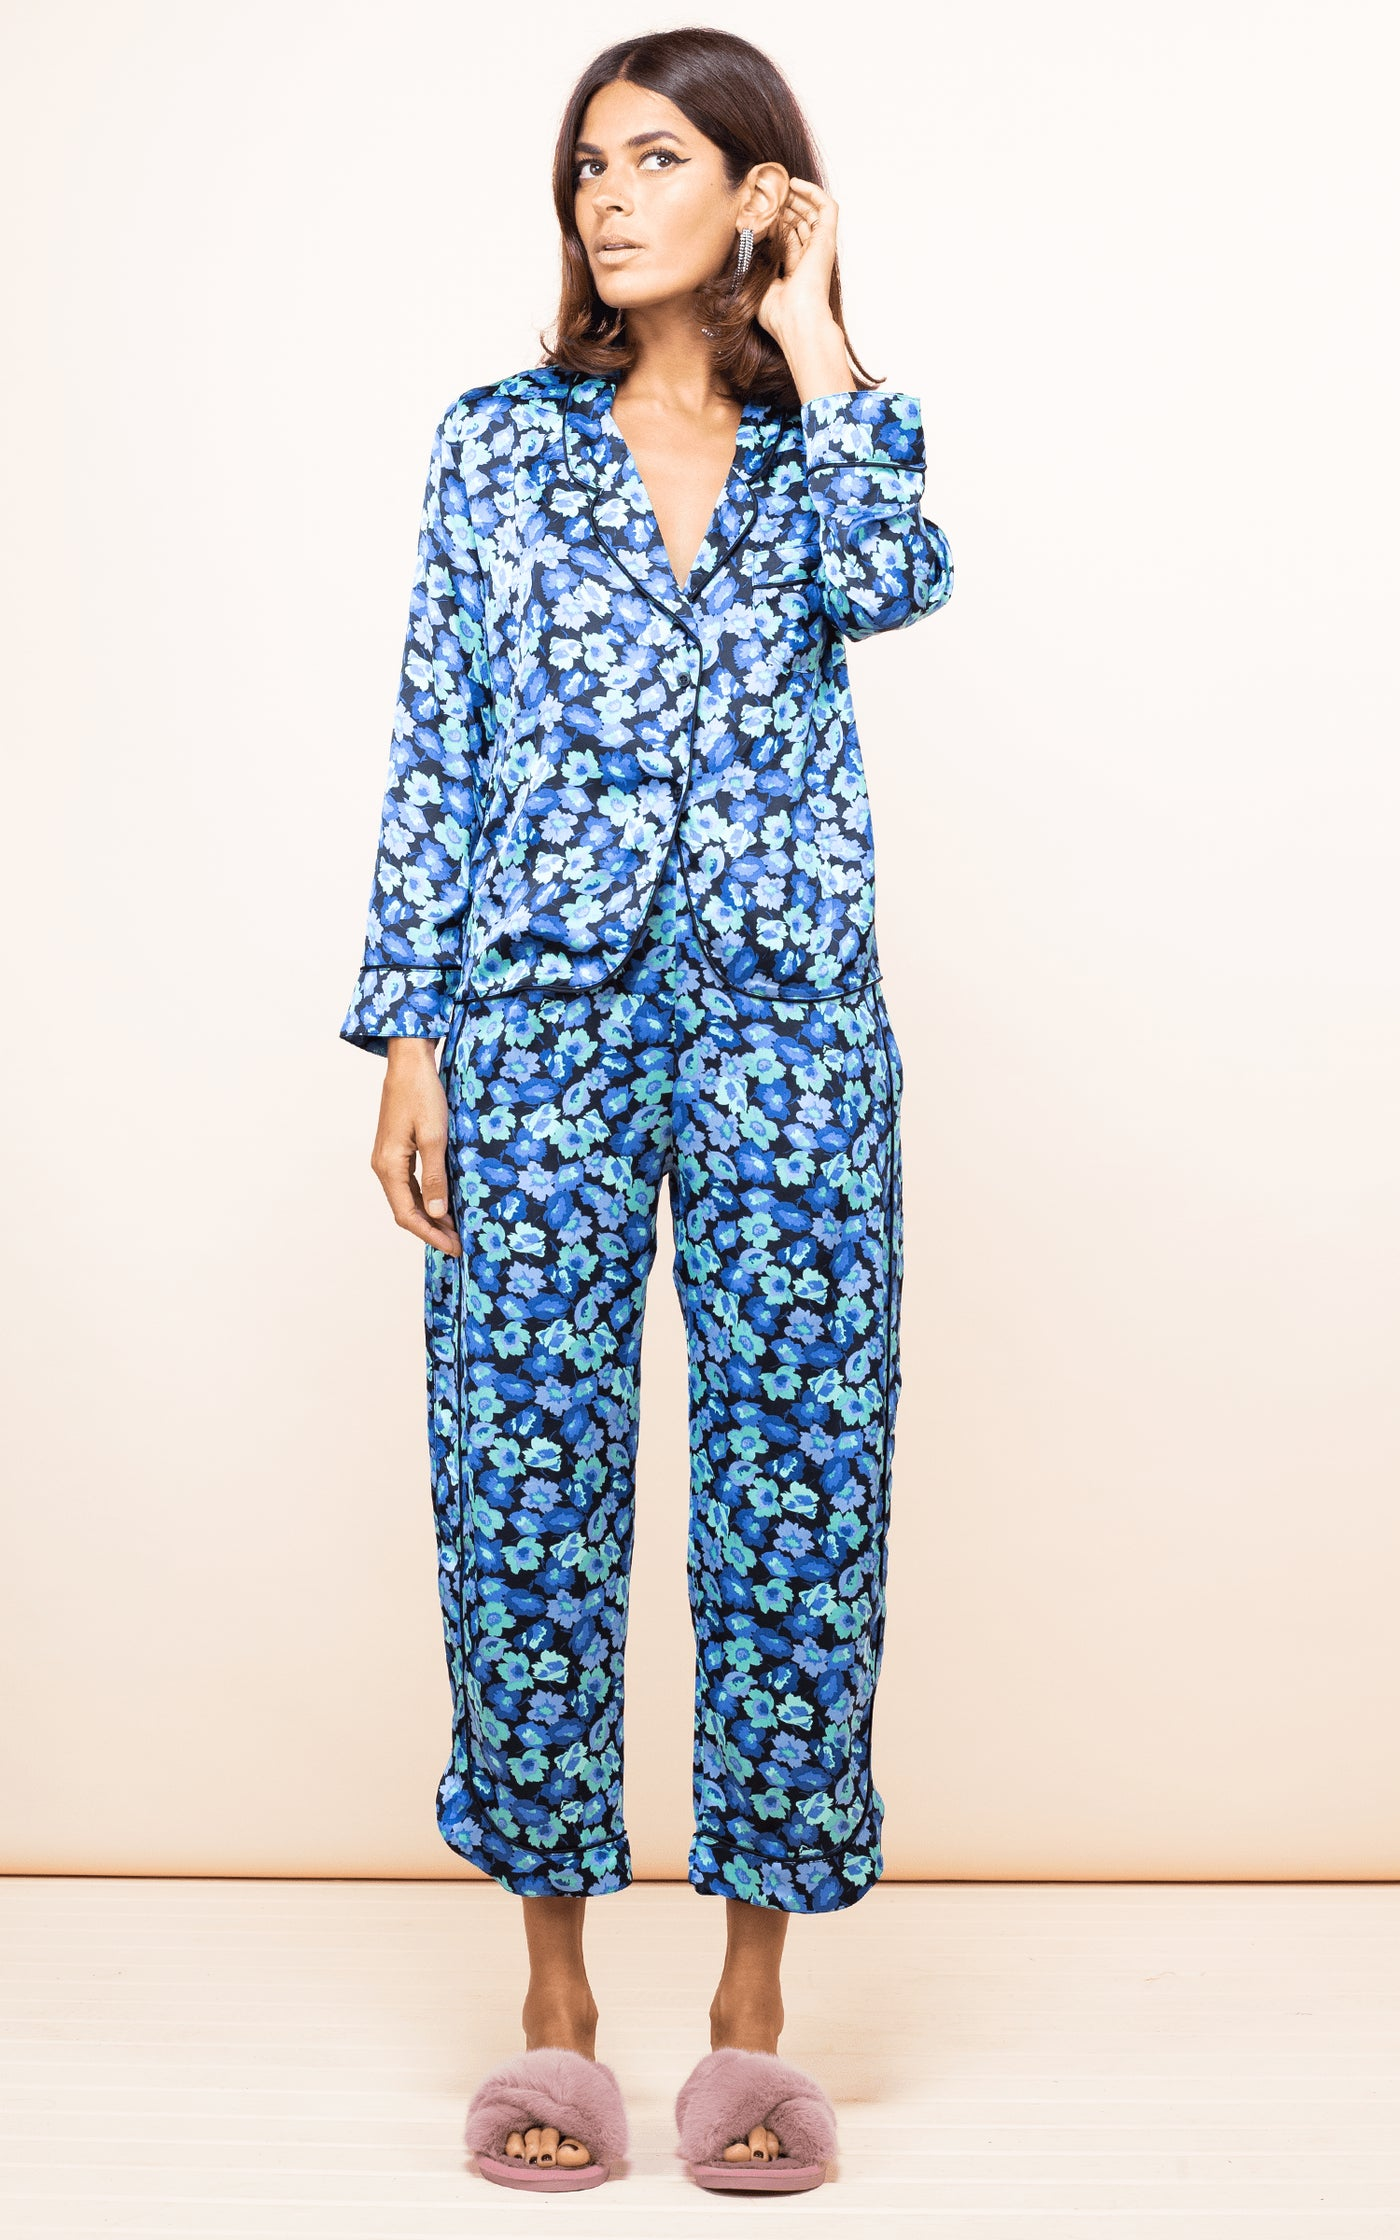 Dancing Leopard model faces forward wearing Enya PJ Set in 50s-inspired blue floral print with slippers